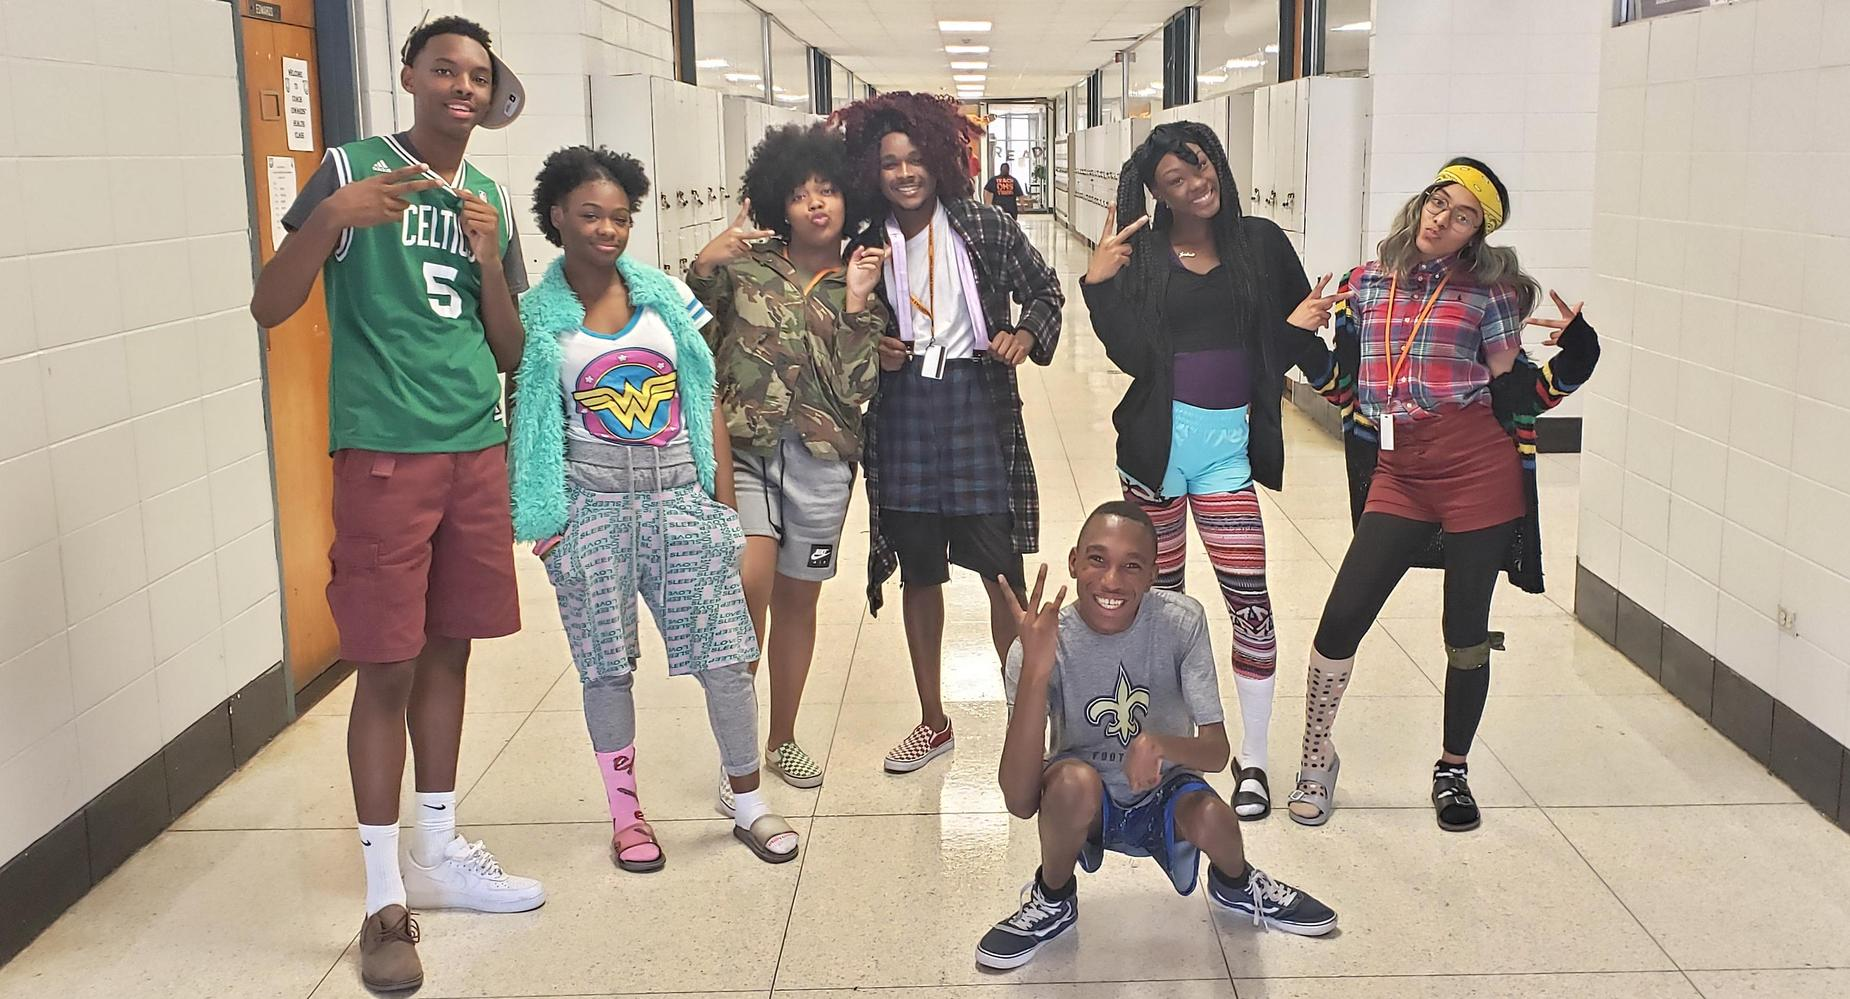 Homecoming Wacky Tacky Day